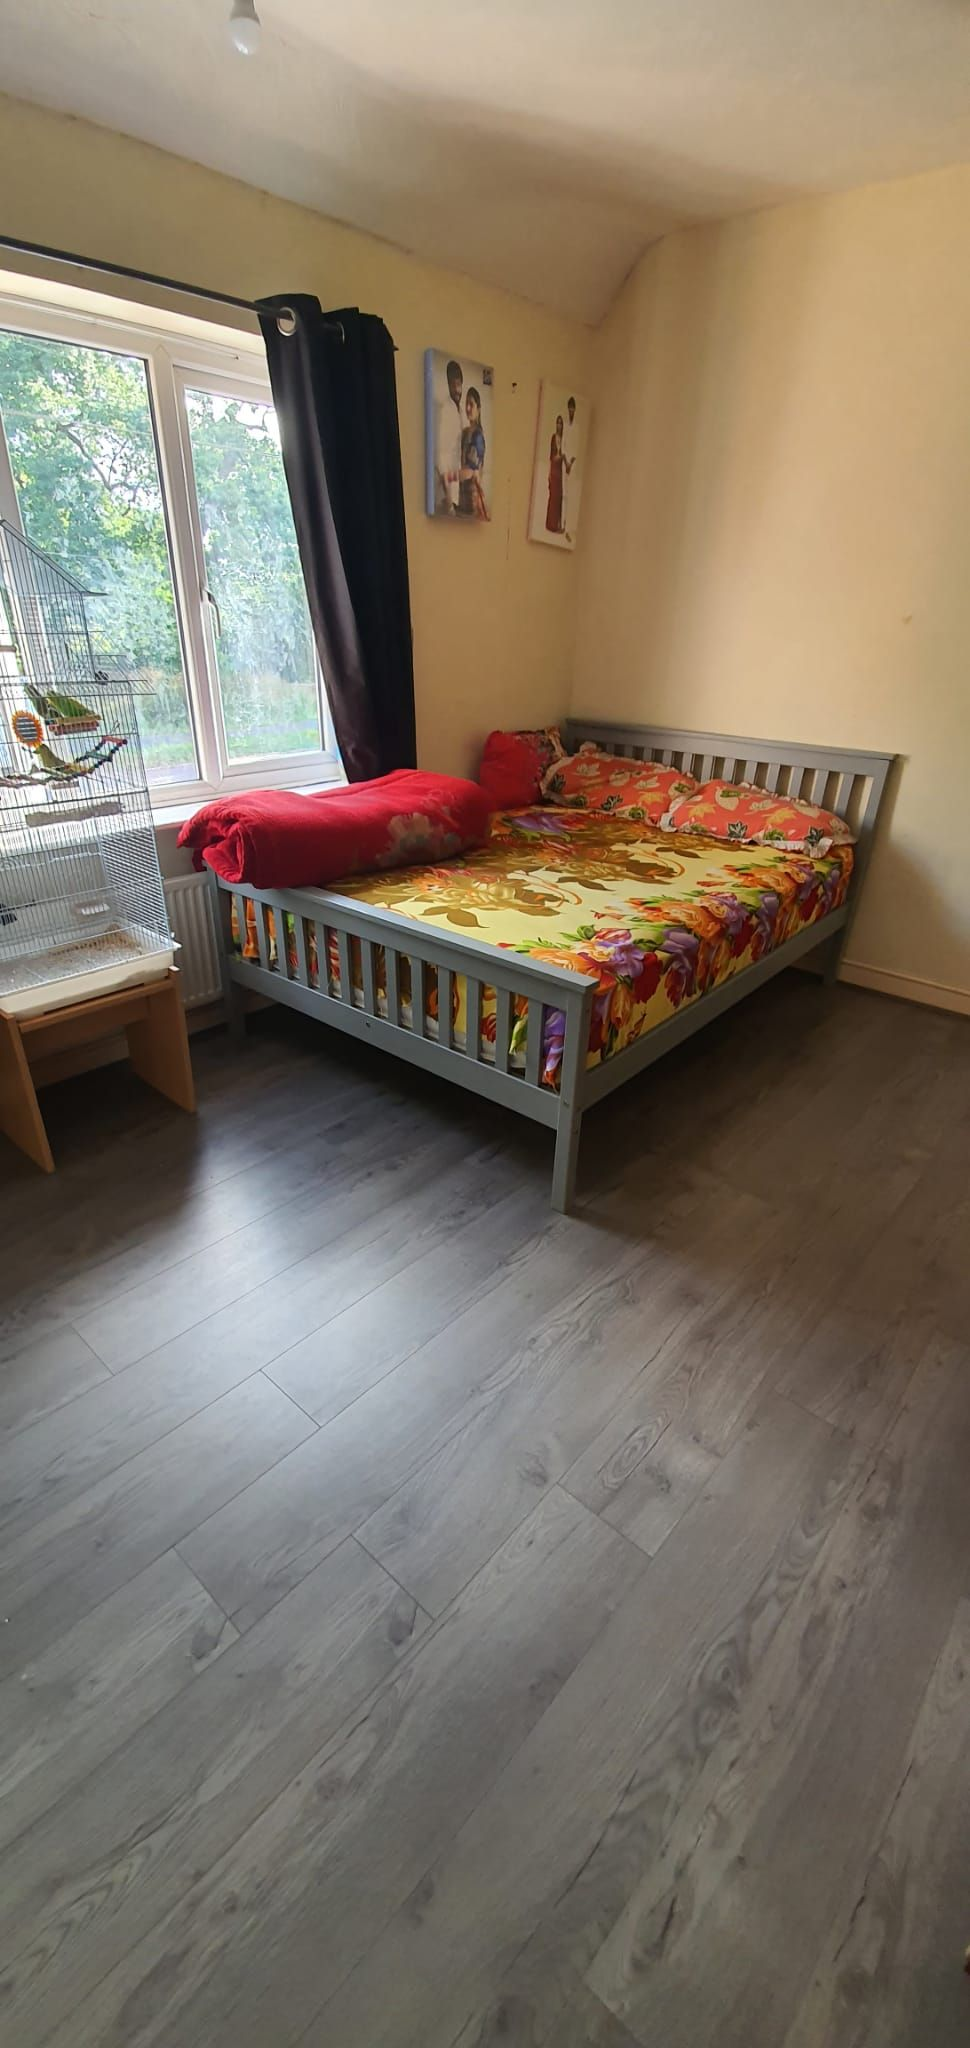 3 bedroom town house For Sale in Leicester - Photograph 8.